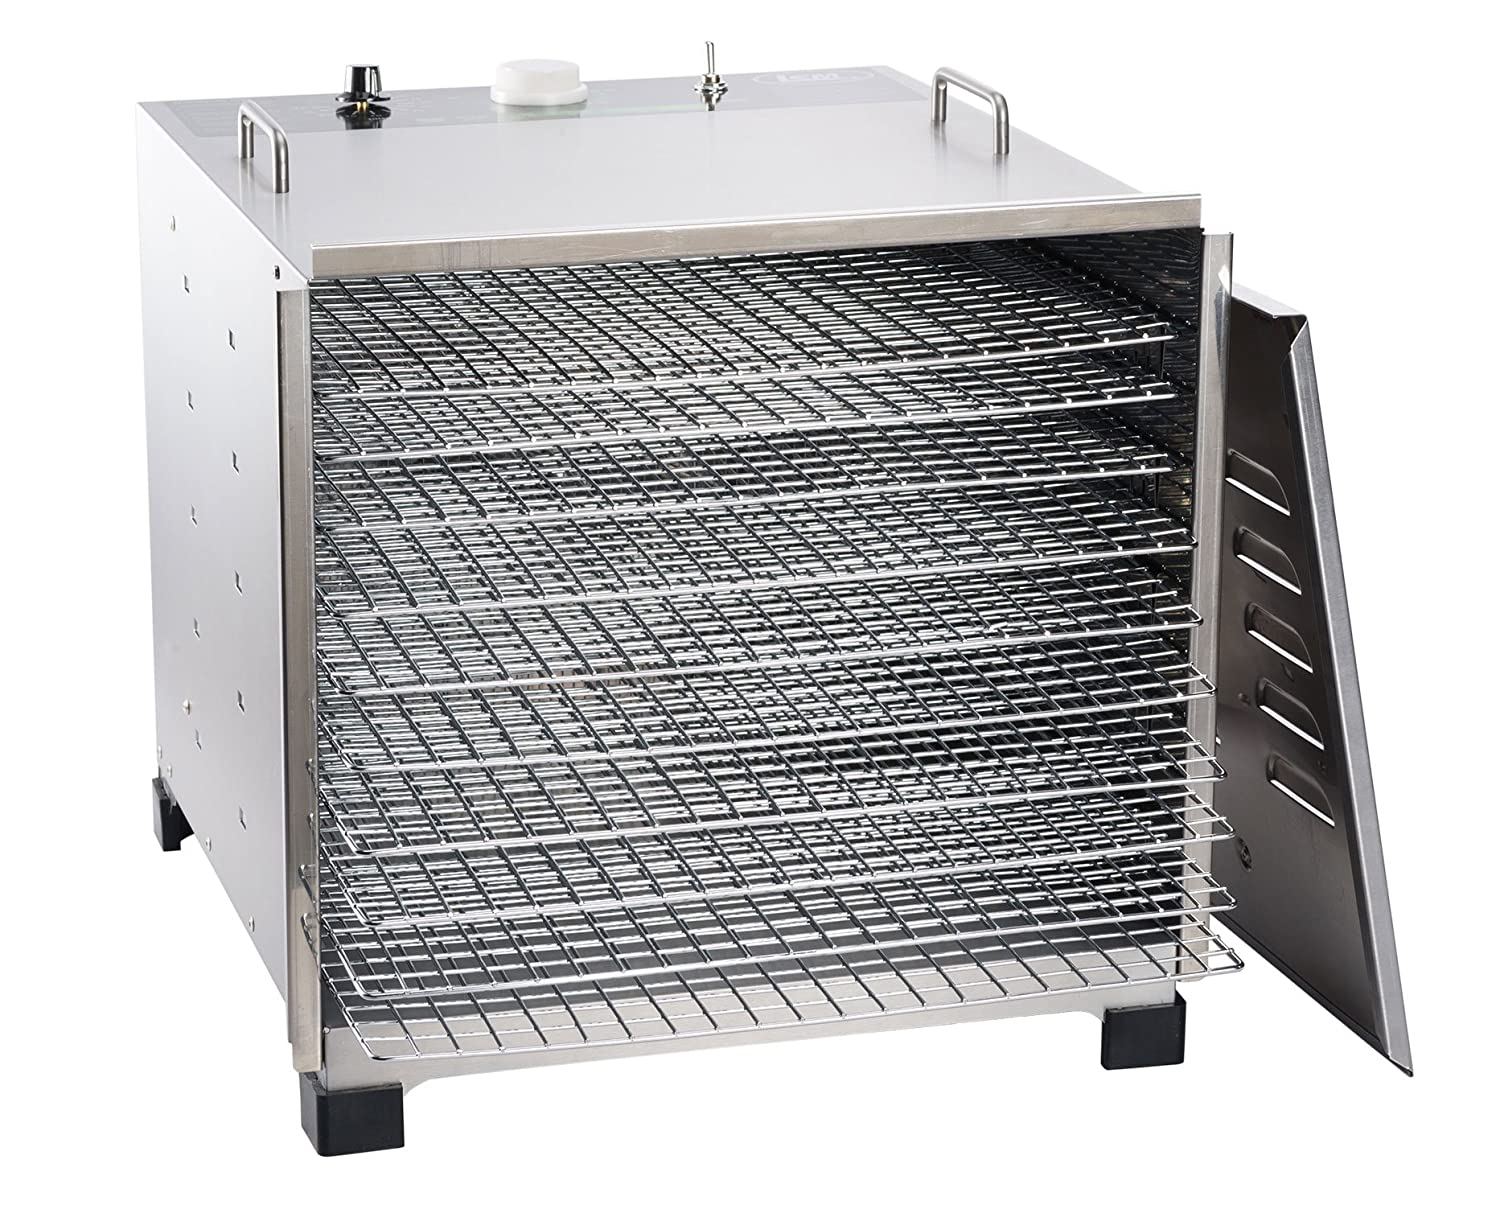 LEM Products 778A Stainless Steel 10 Tray Dehydrator w/Timer